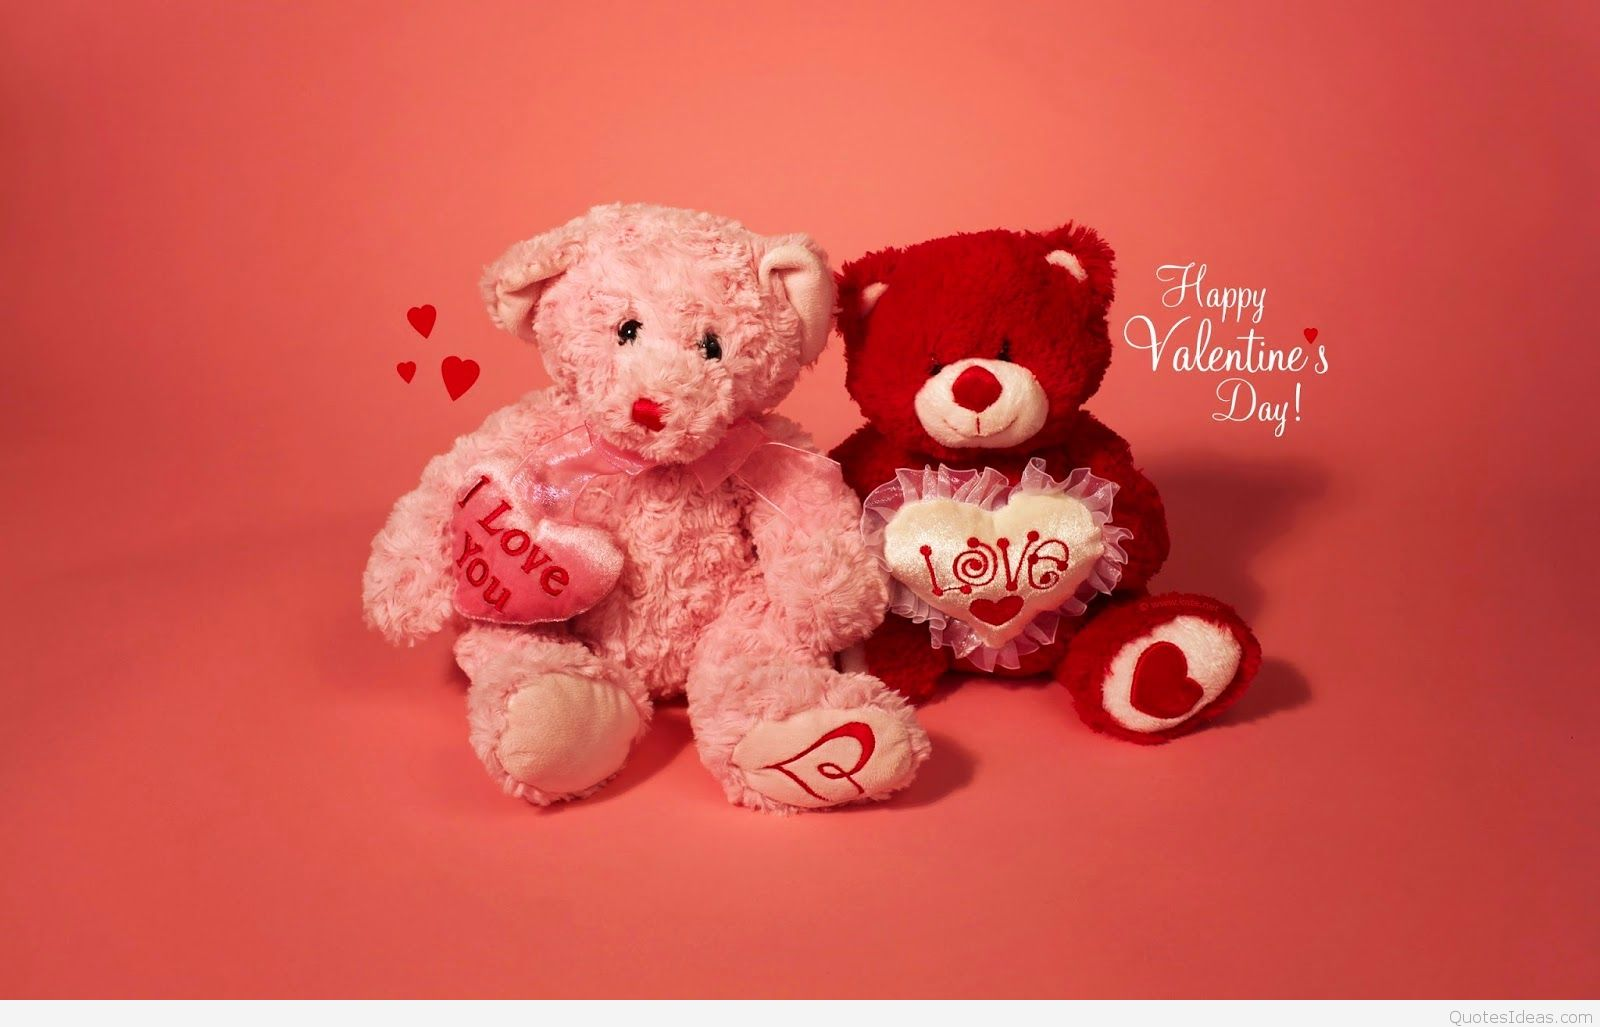 happy-valentines-day-wishes-for-friends-and-family